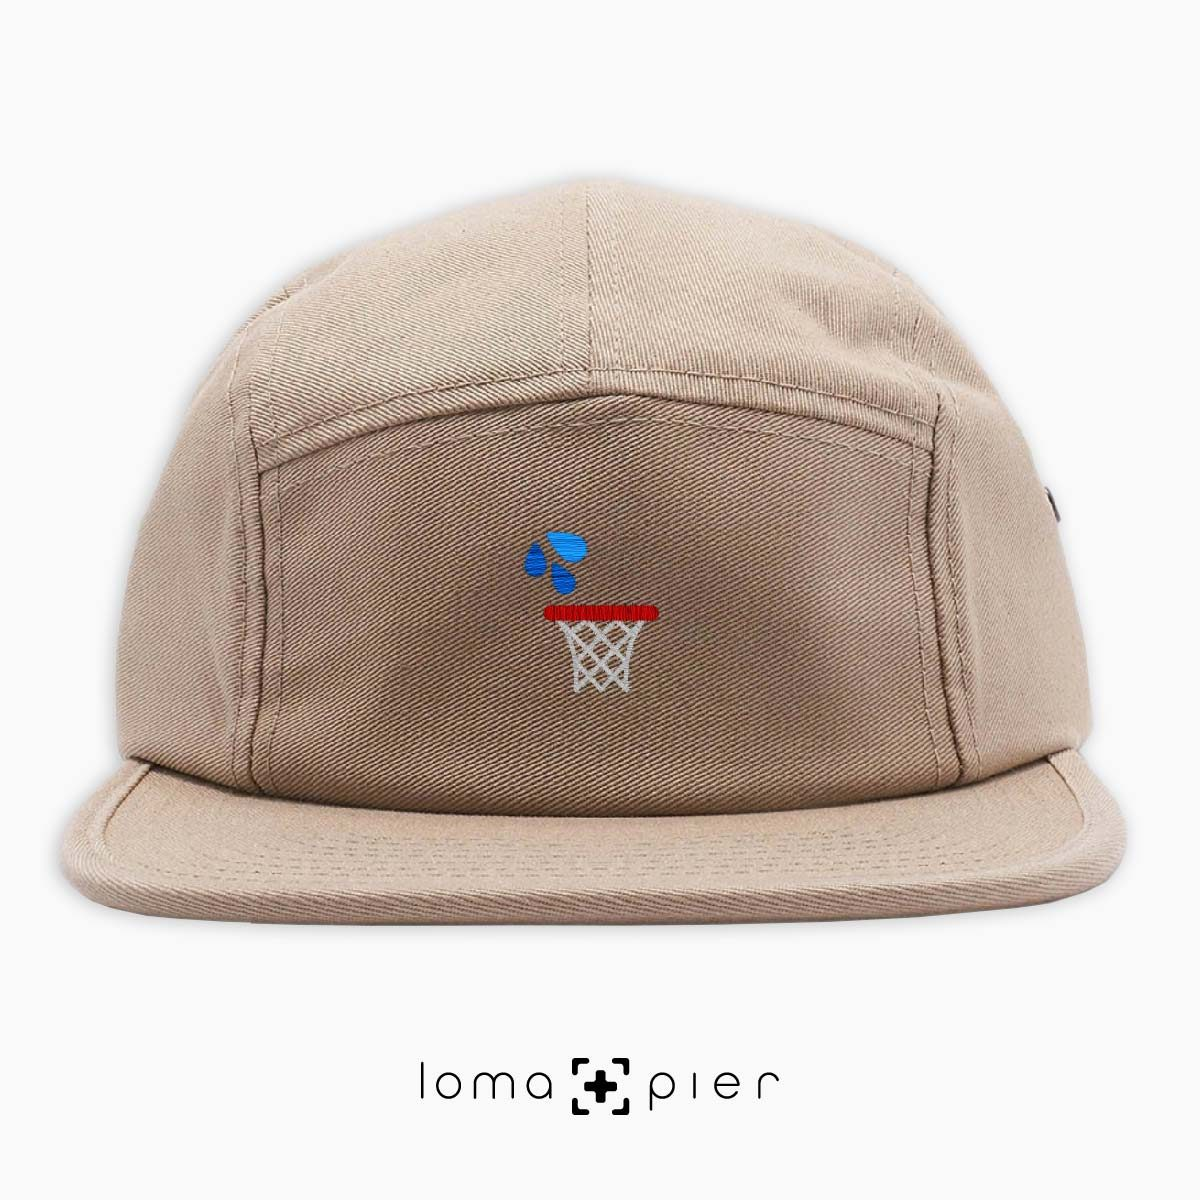 WET JUMPER basketball hoop icon embroidered on a khaki cotton 5-panel hat by loma+pier hat store